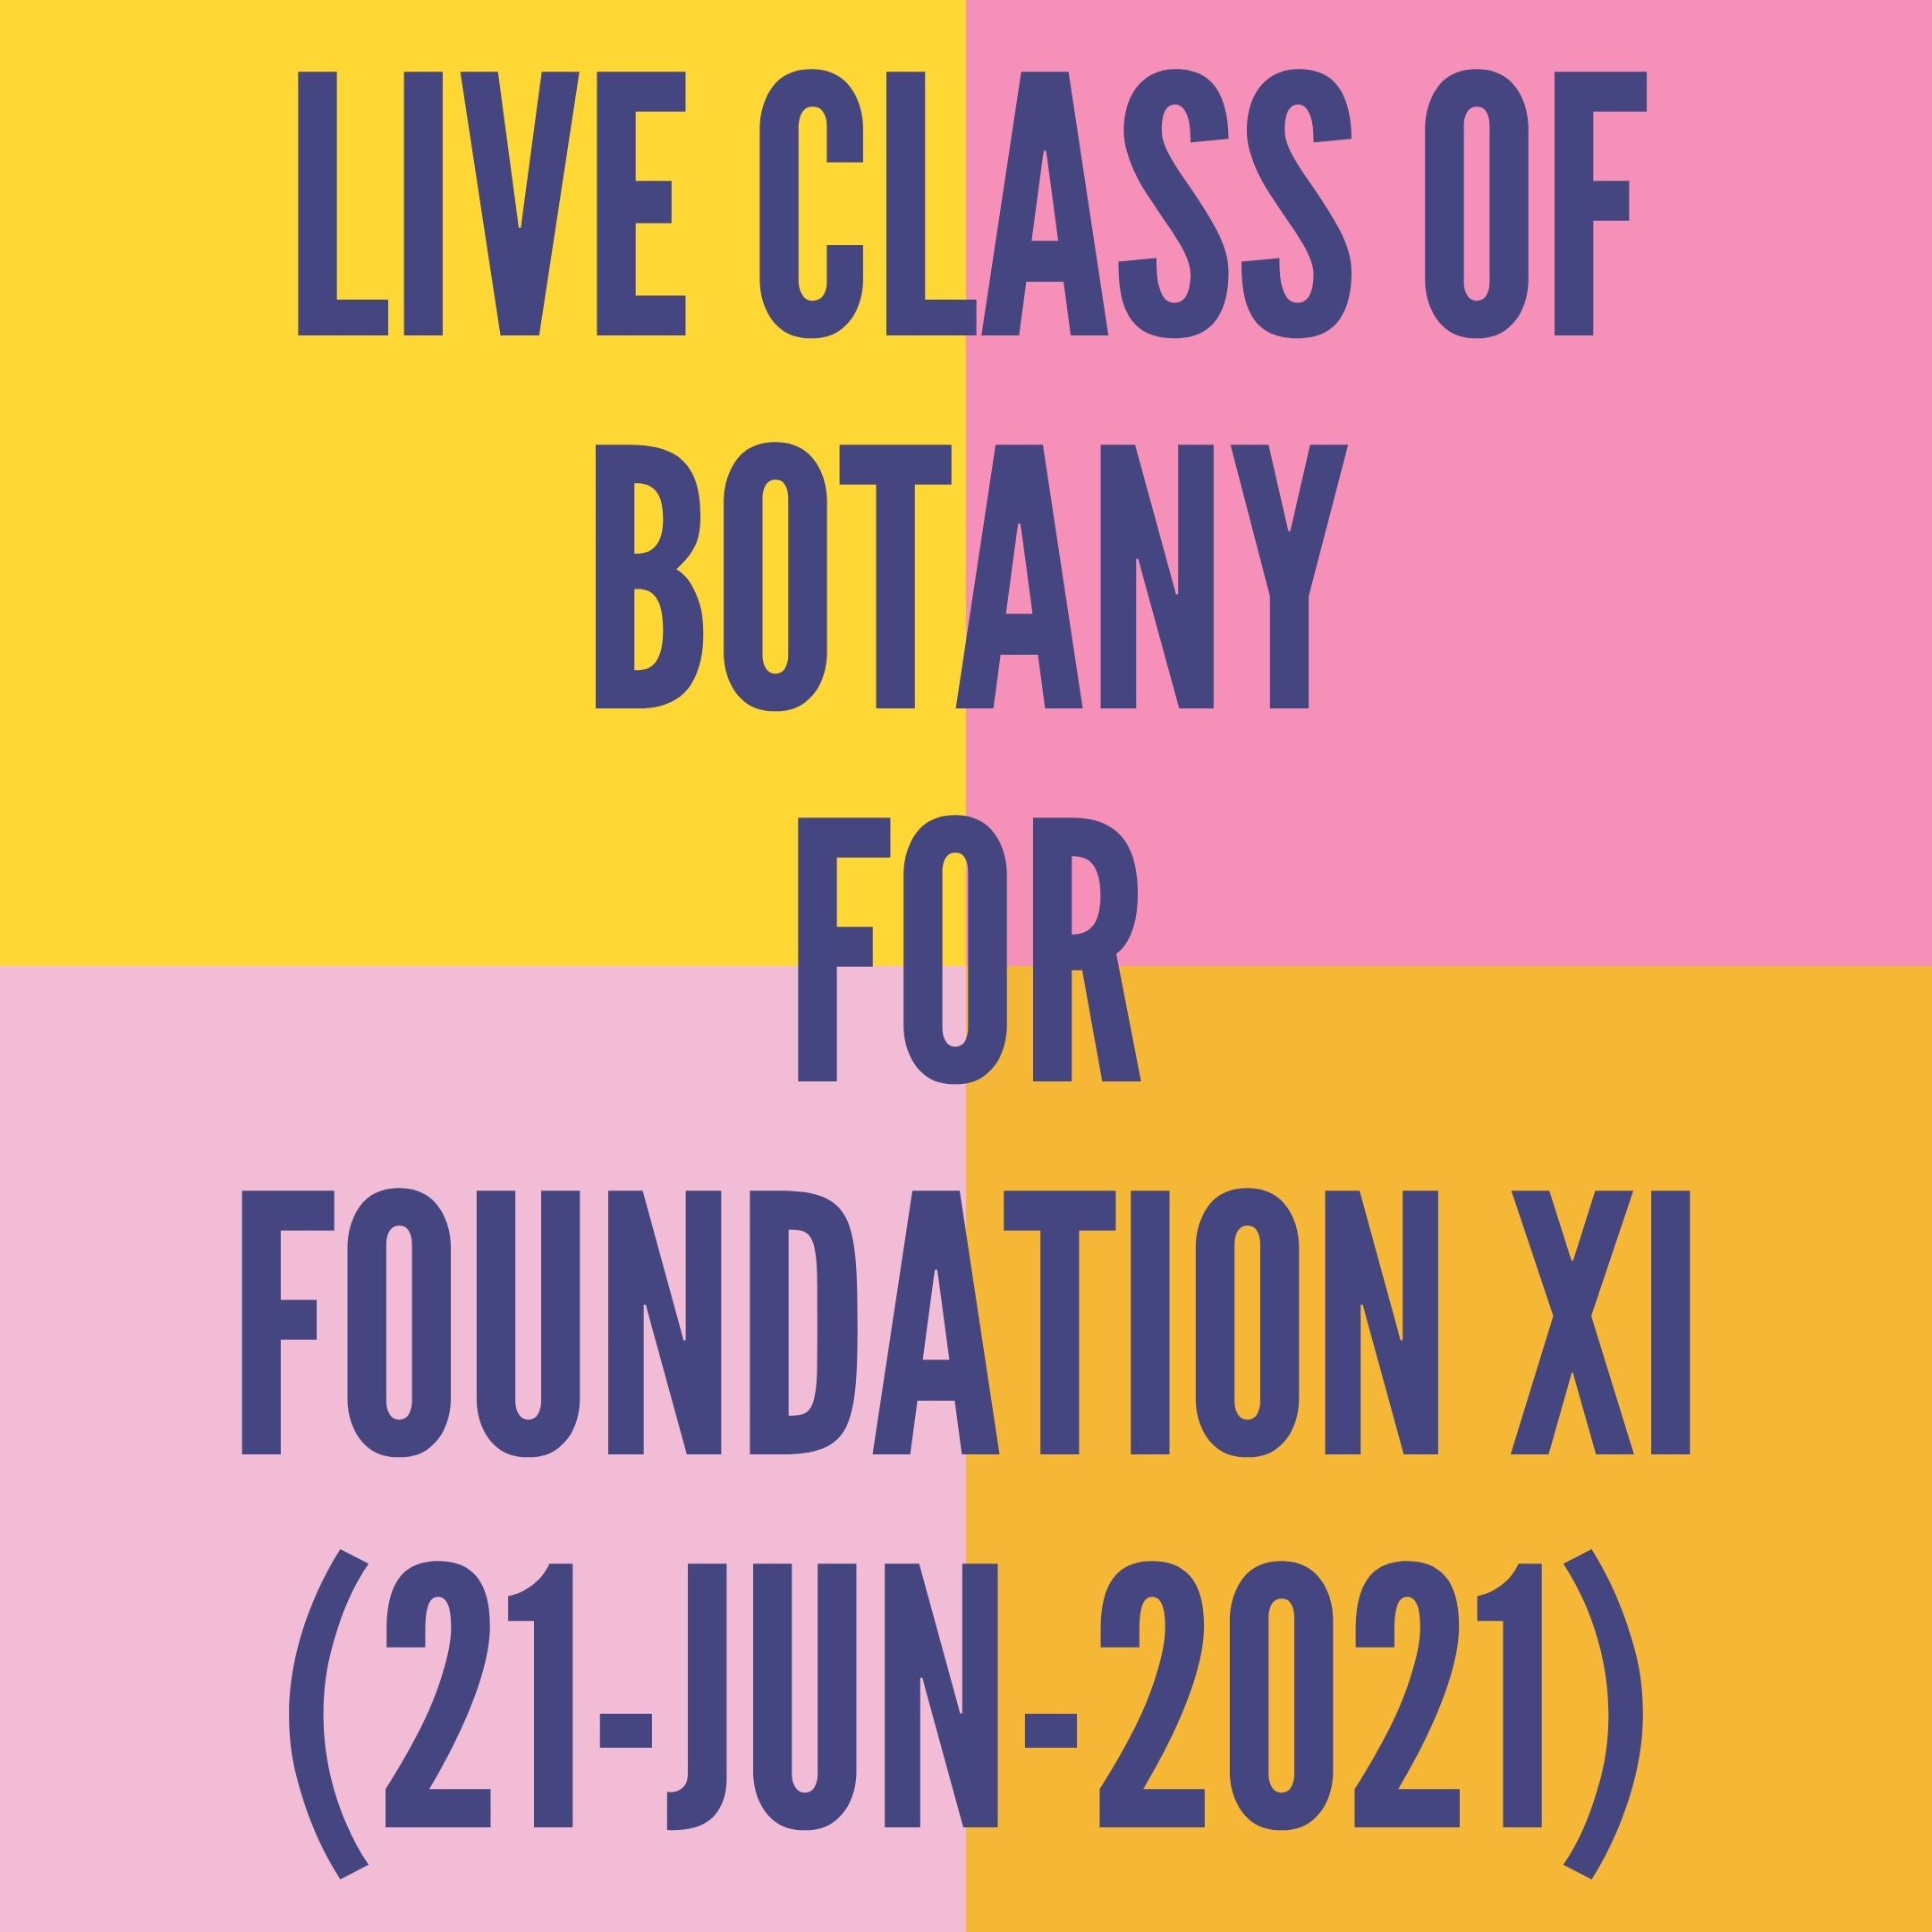 LIVE CLASS OF BOTANY FOR FOUNDATION XI (21-JUN-2021) CELL-THE UNIT OF LIFE